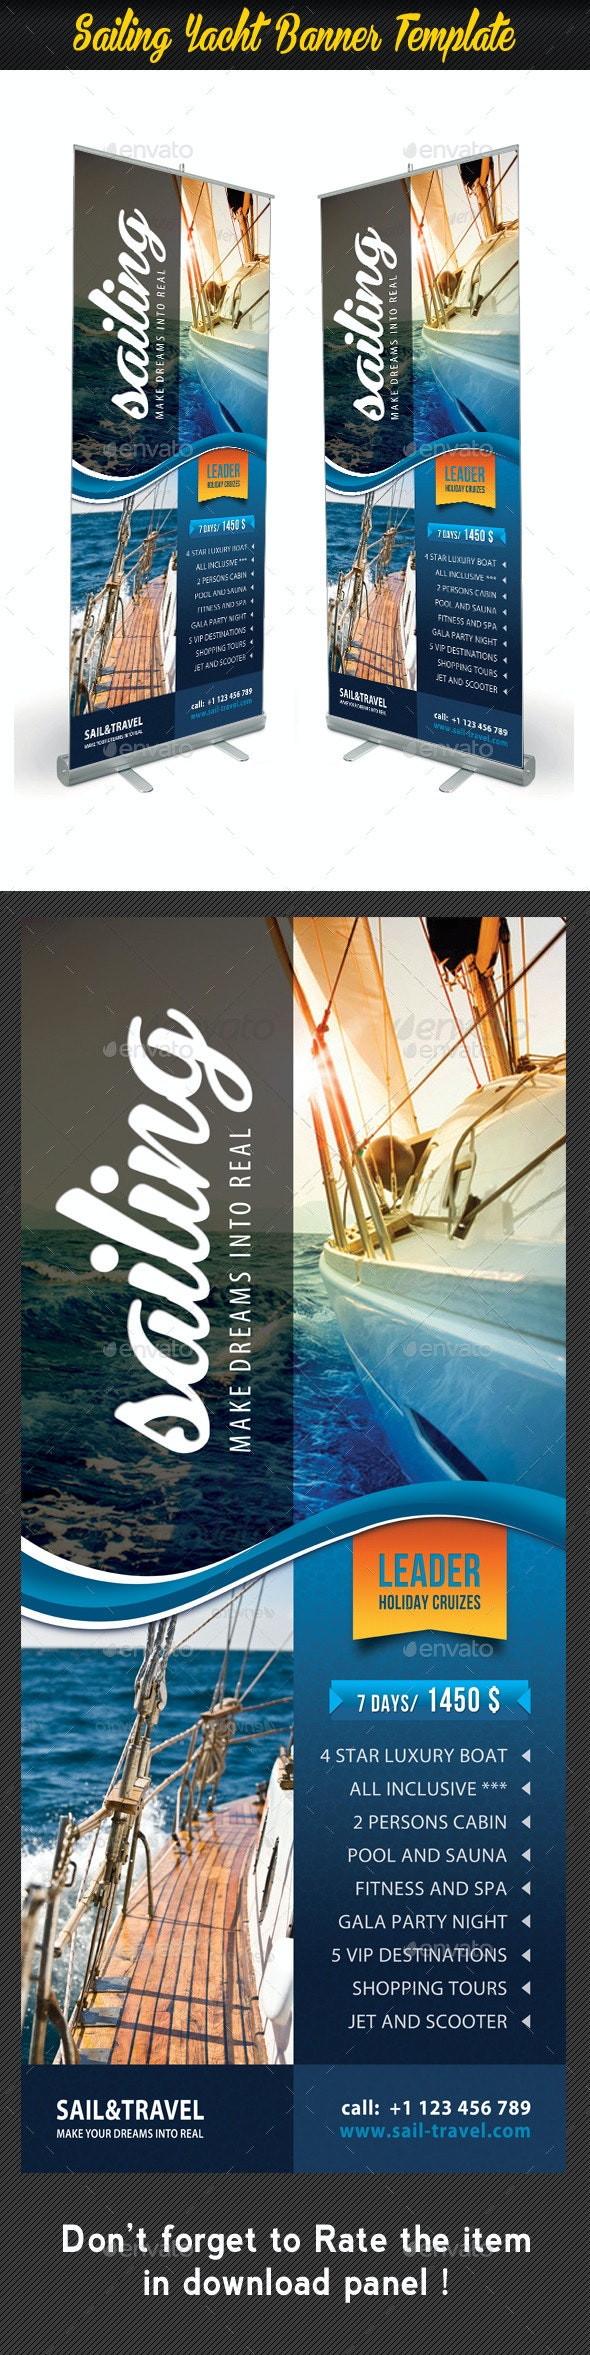 Sailing Yacht Banner Template 01 - Signage Print Templates